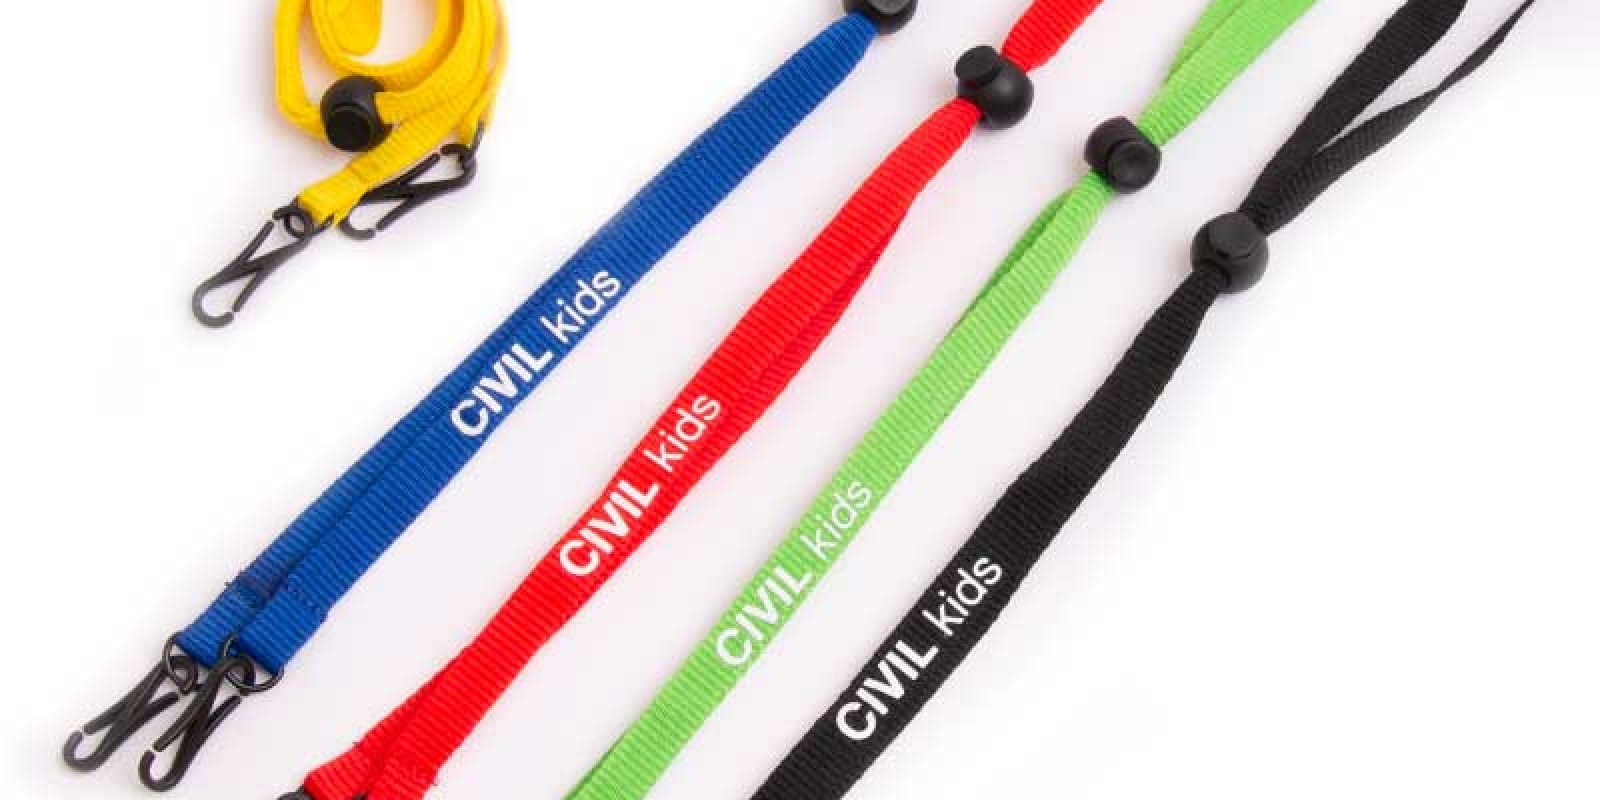 YOUTH_CIVIL_LANYARDS_800X800_test